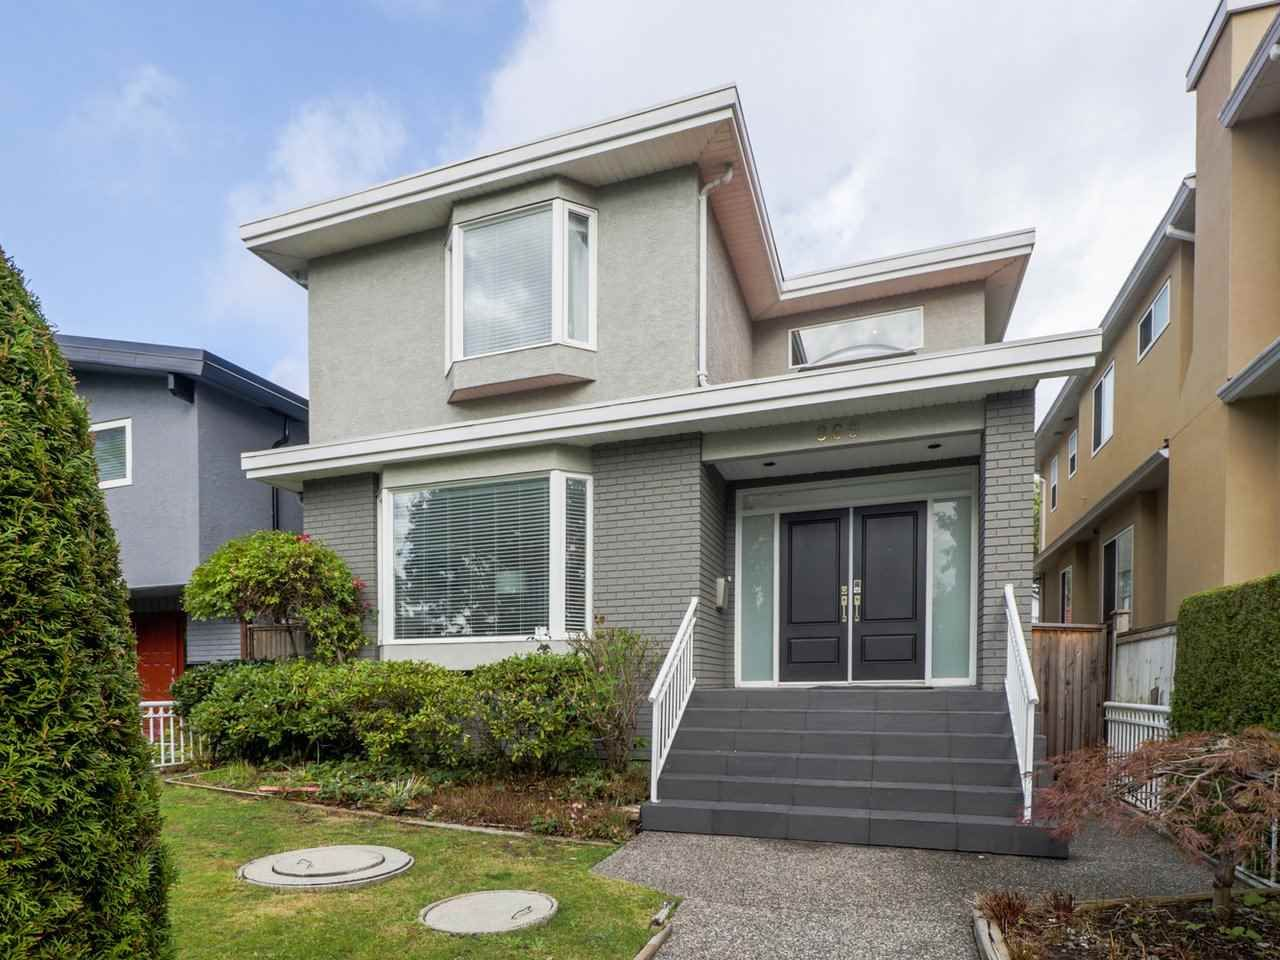 Main Photo: 869 W 63RD Avenue in Vancouver: Marpole House for sale (Vancouver West)  : MLS®# R2503413